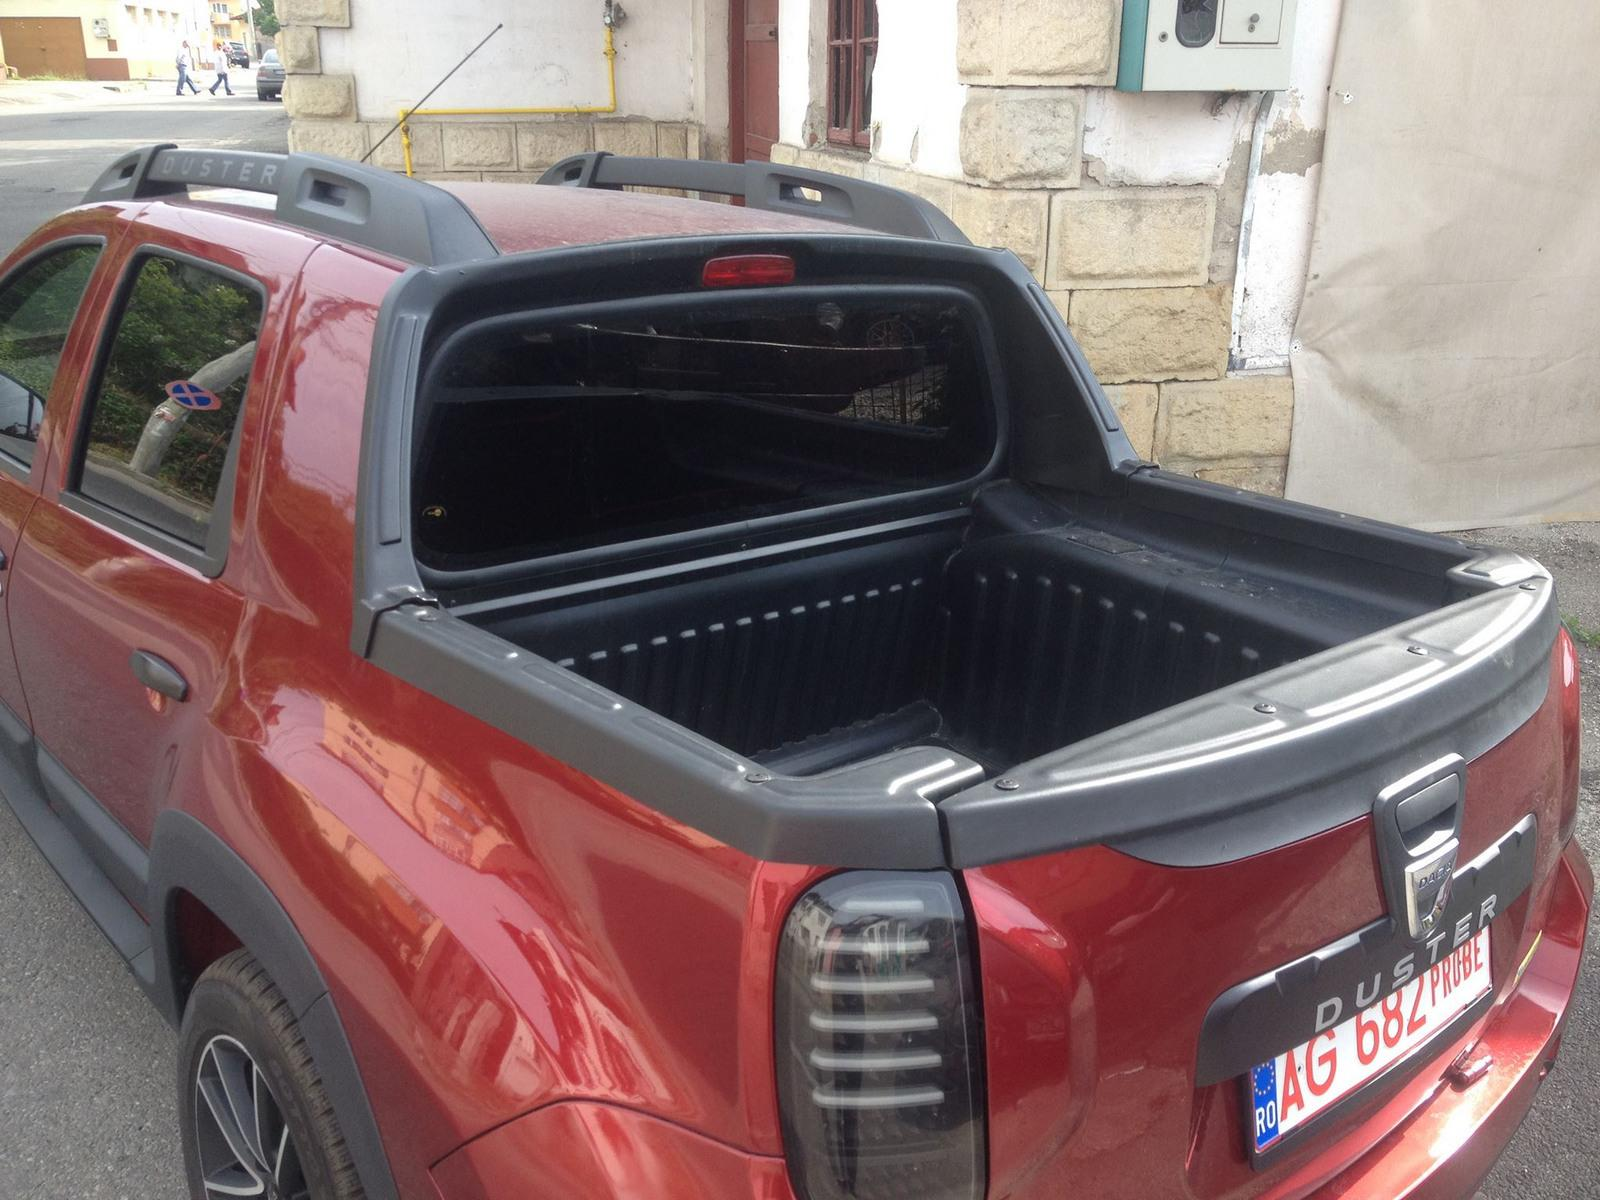 dacia duster double cab pickup snimljena u rumuniji auto magazin. Black Bedroom Furniture Sets. Home Design Ideas